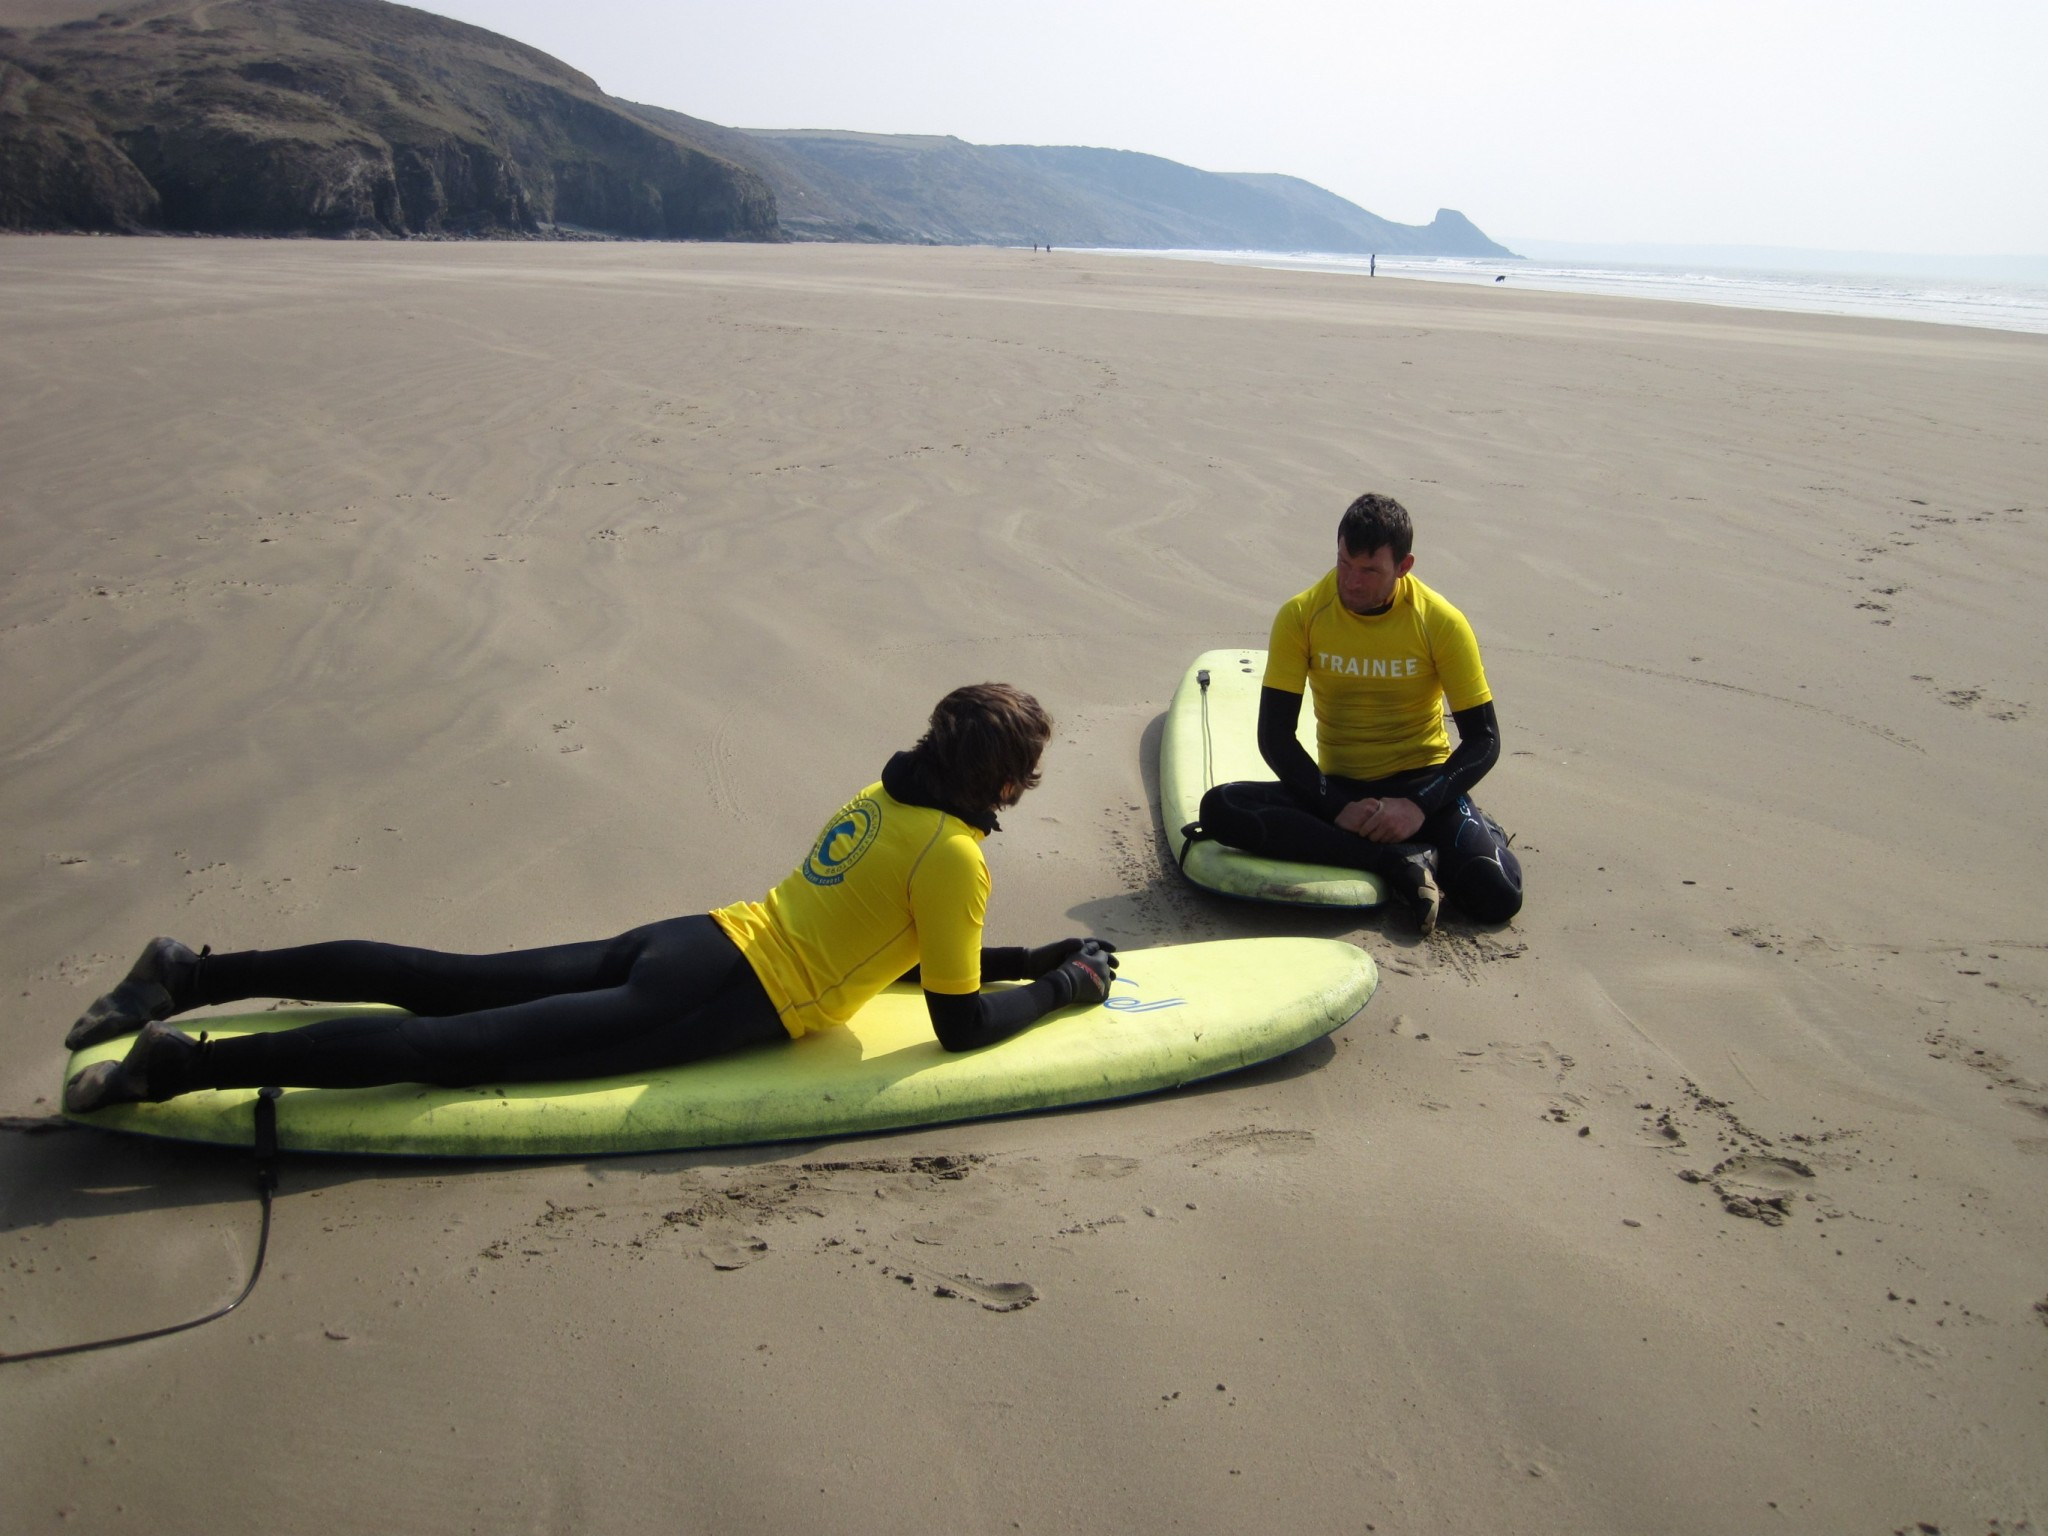 SLSGB Beach Lifeguard Course